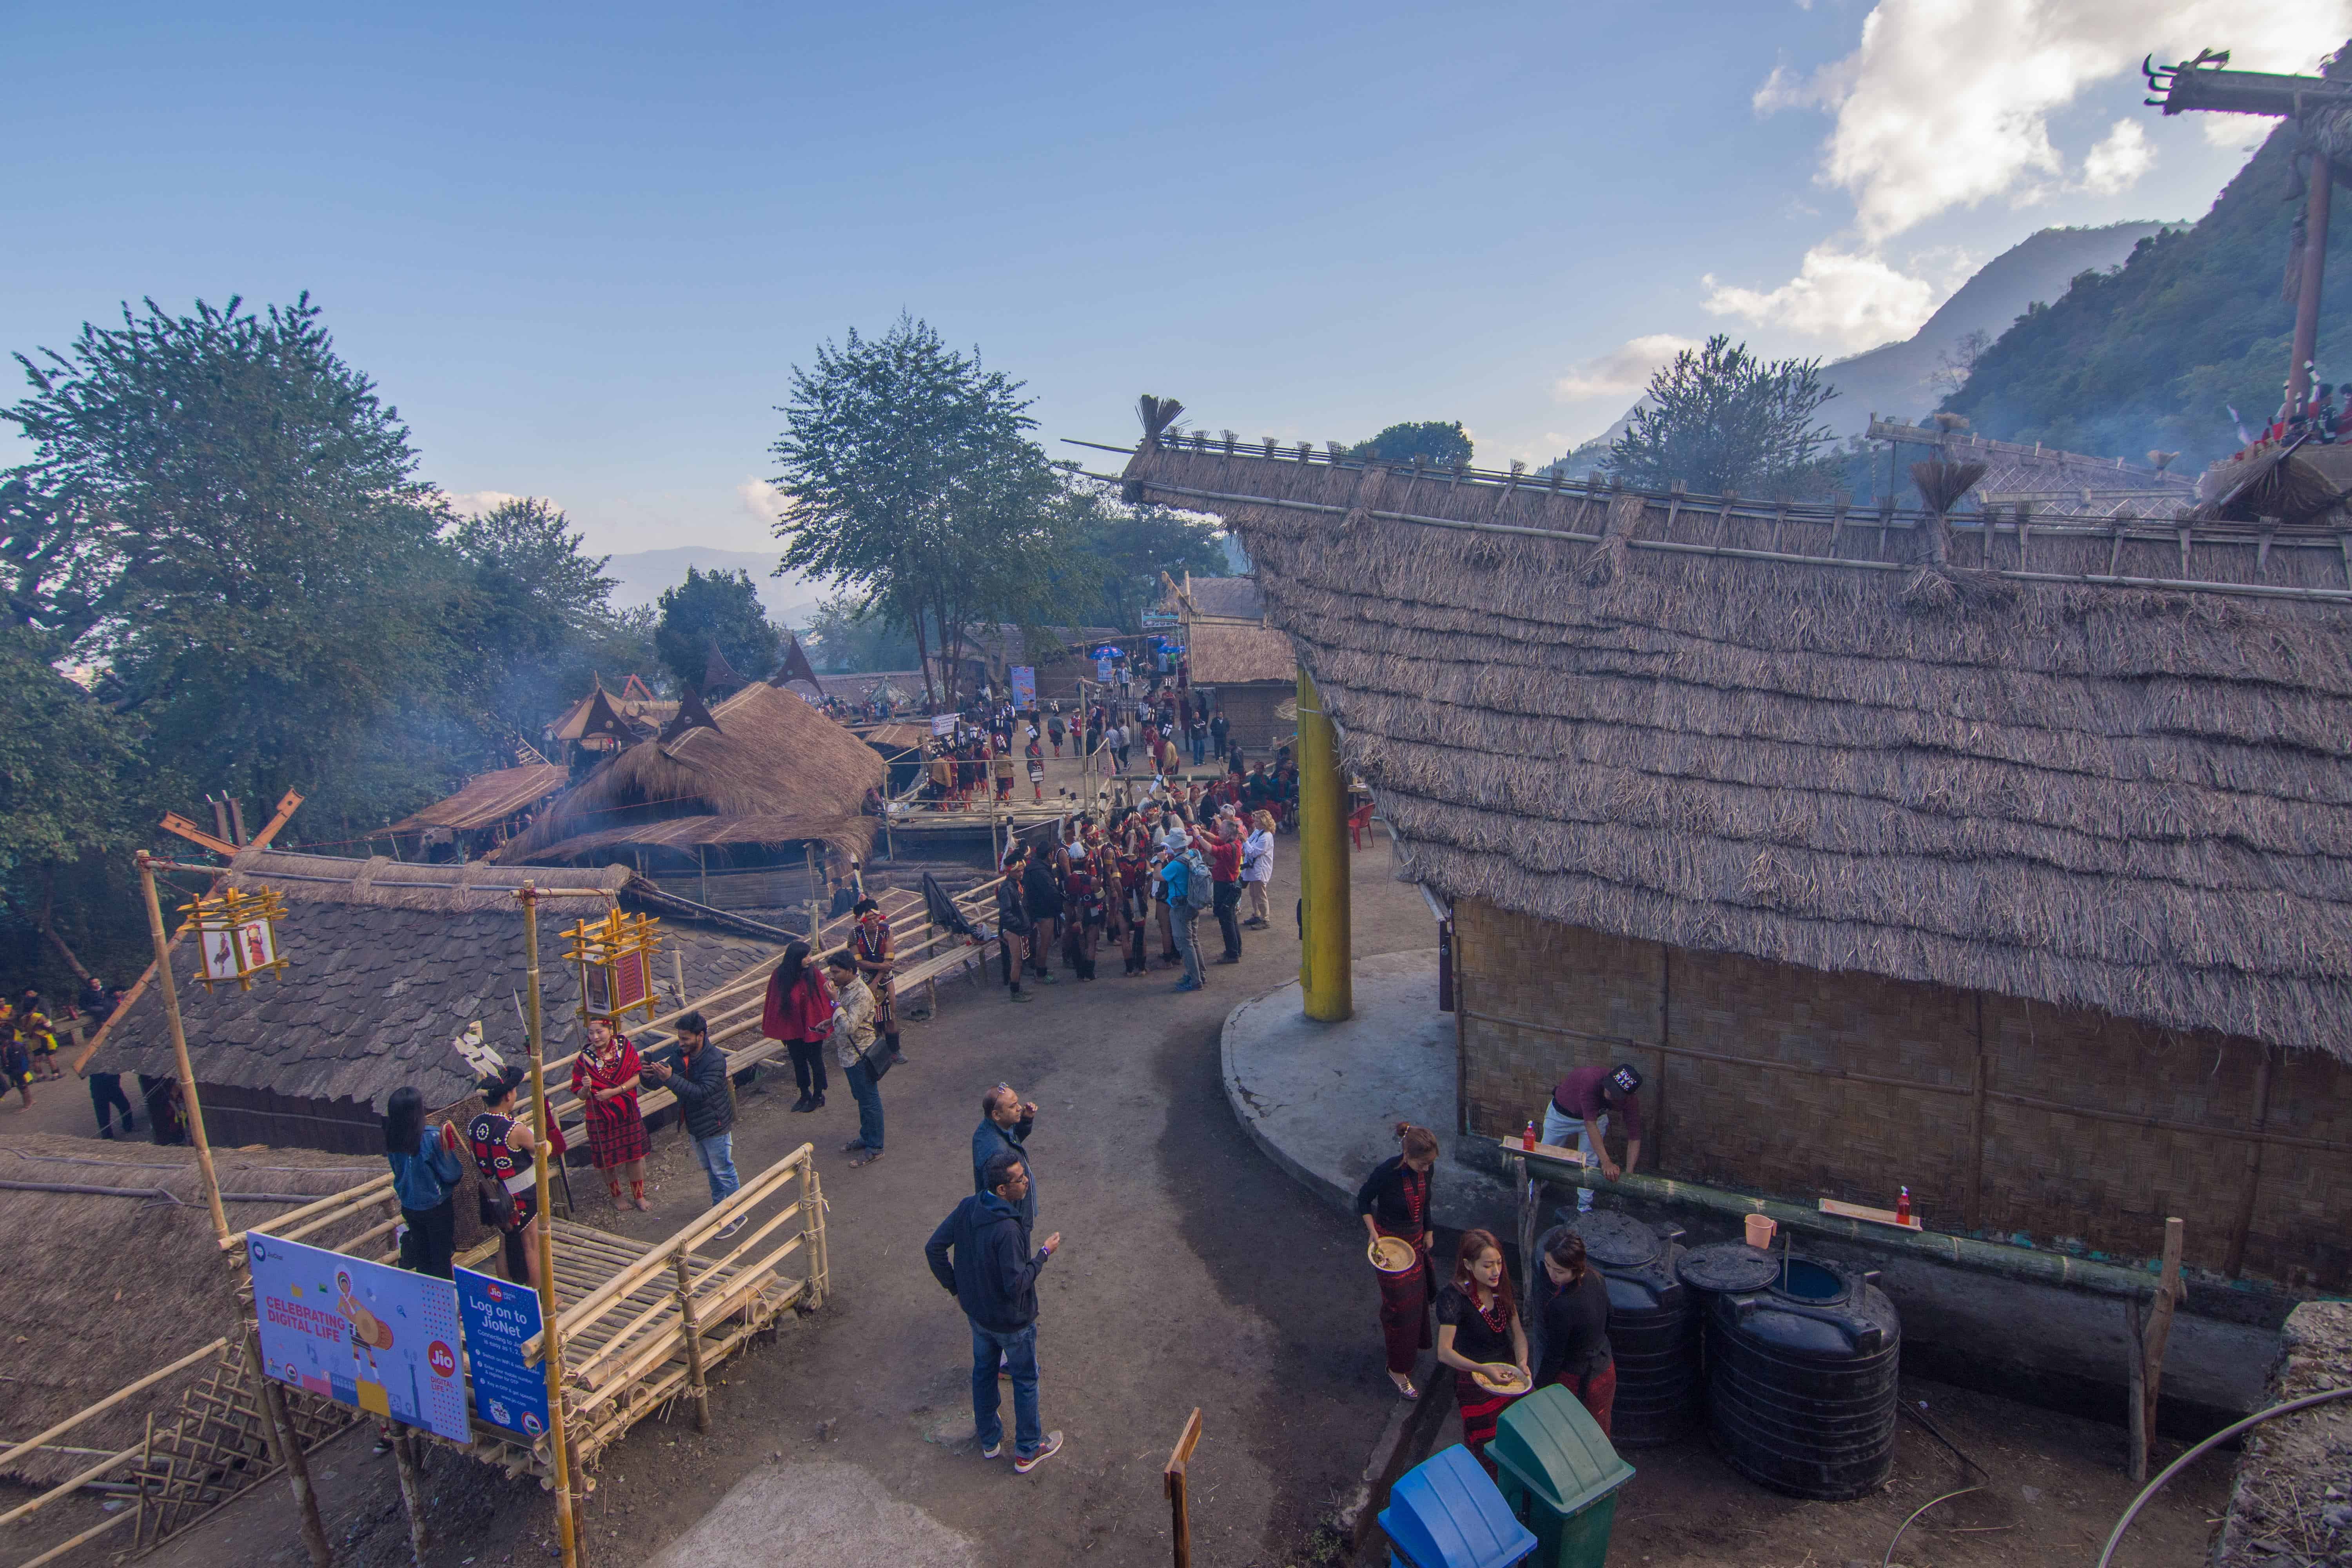 hornbill festival 2019 trip